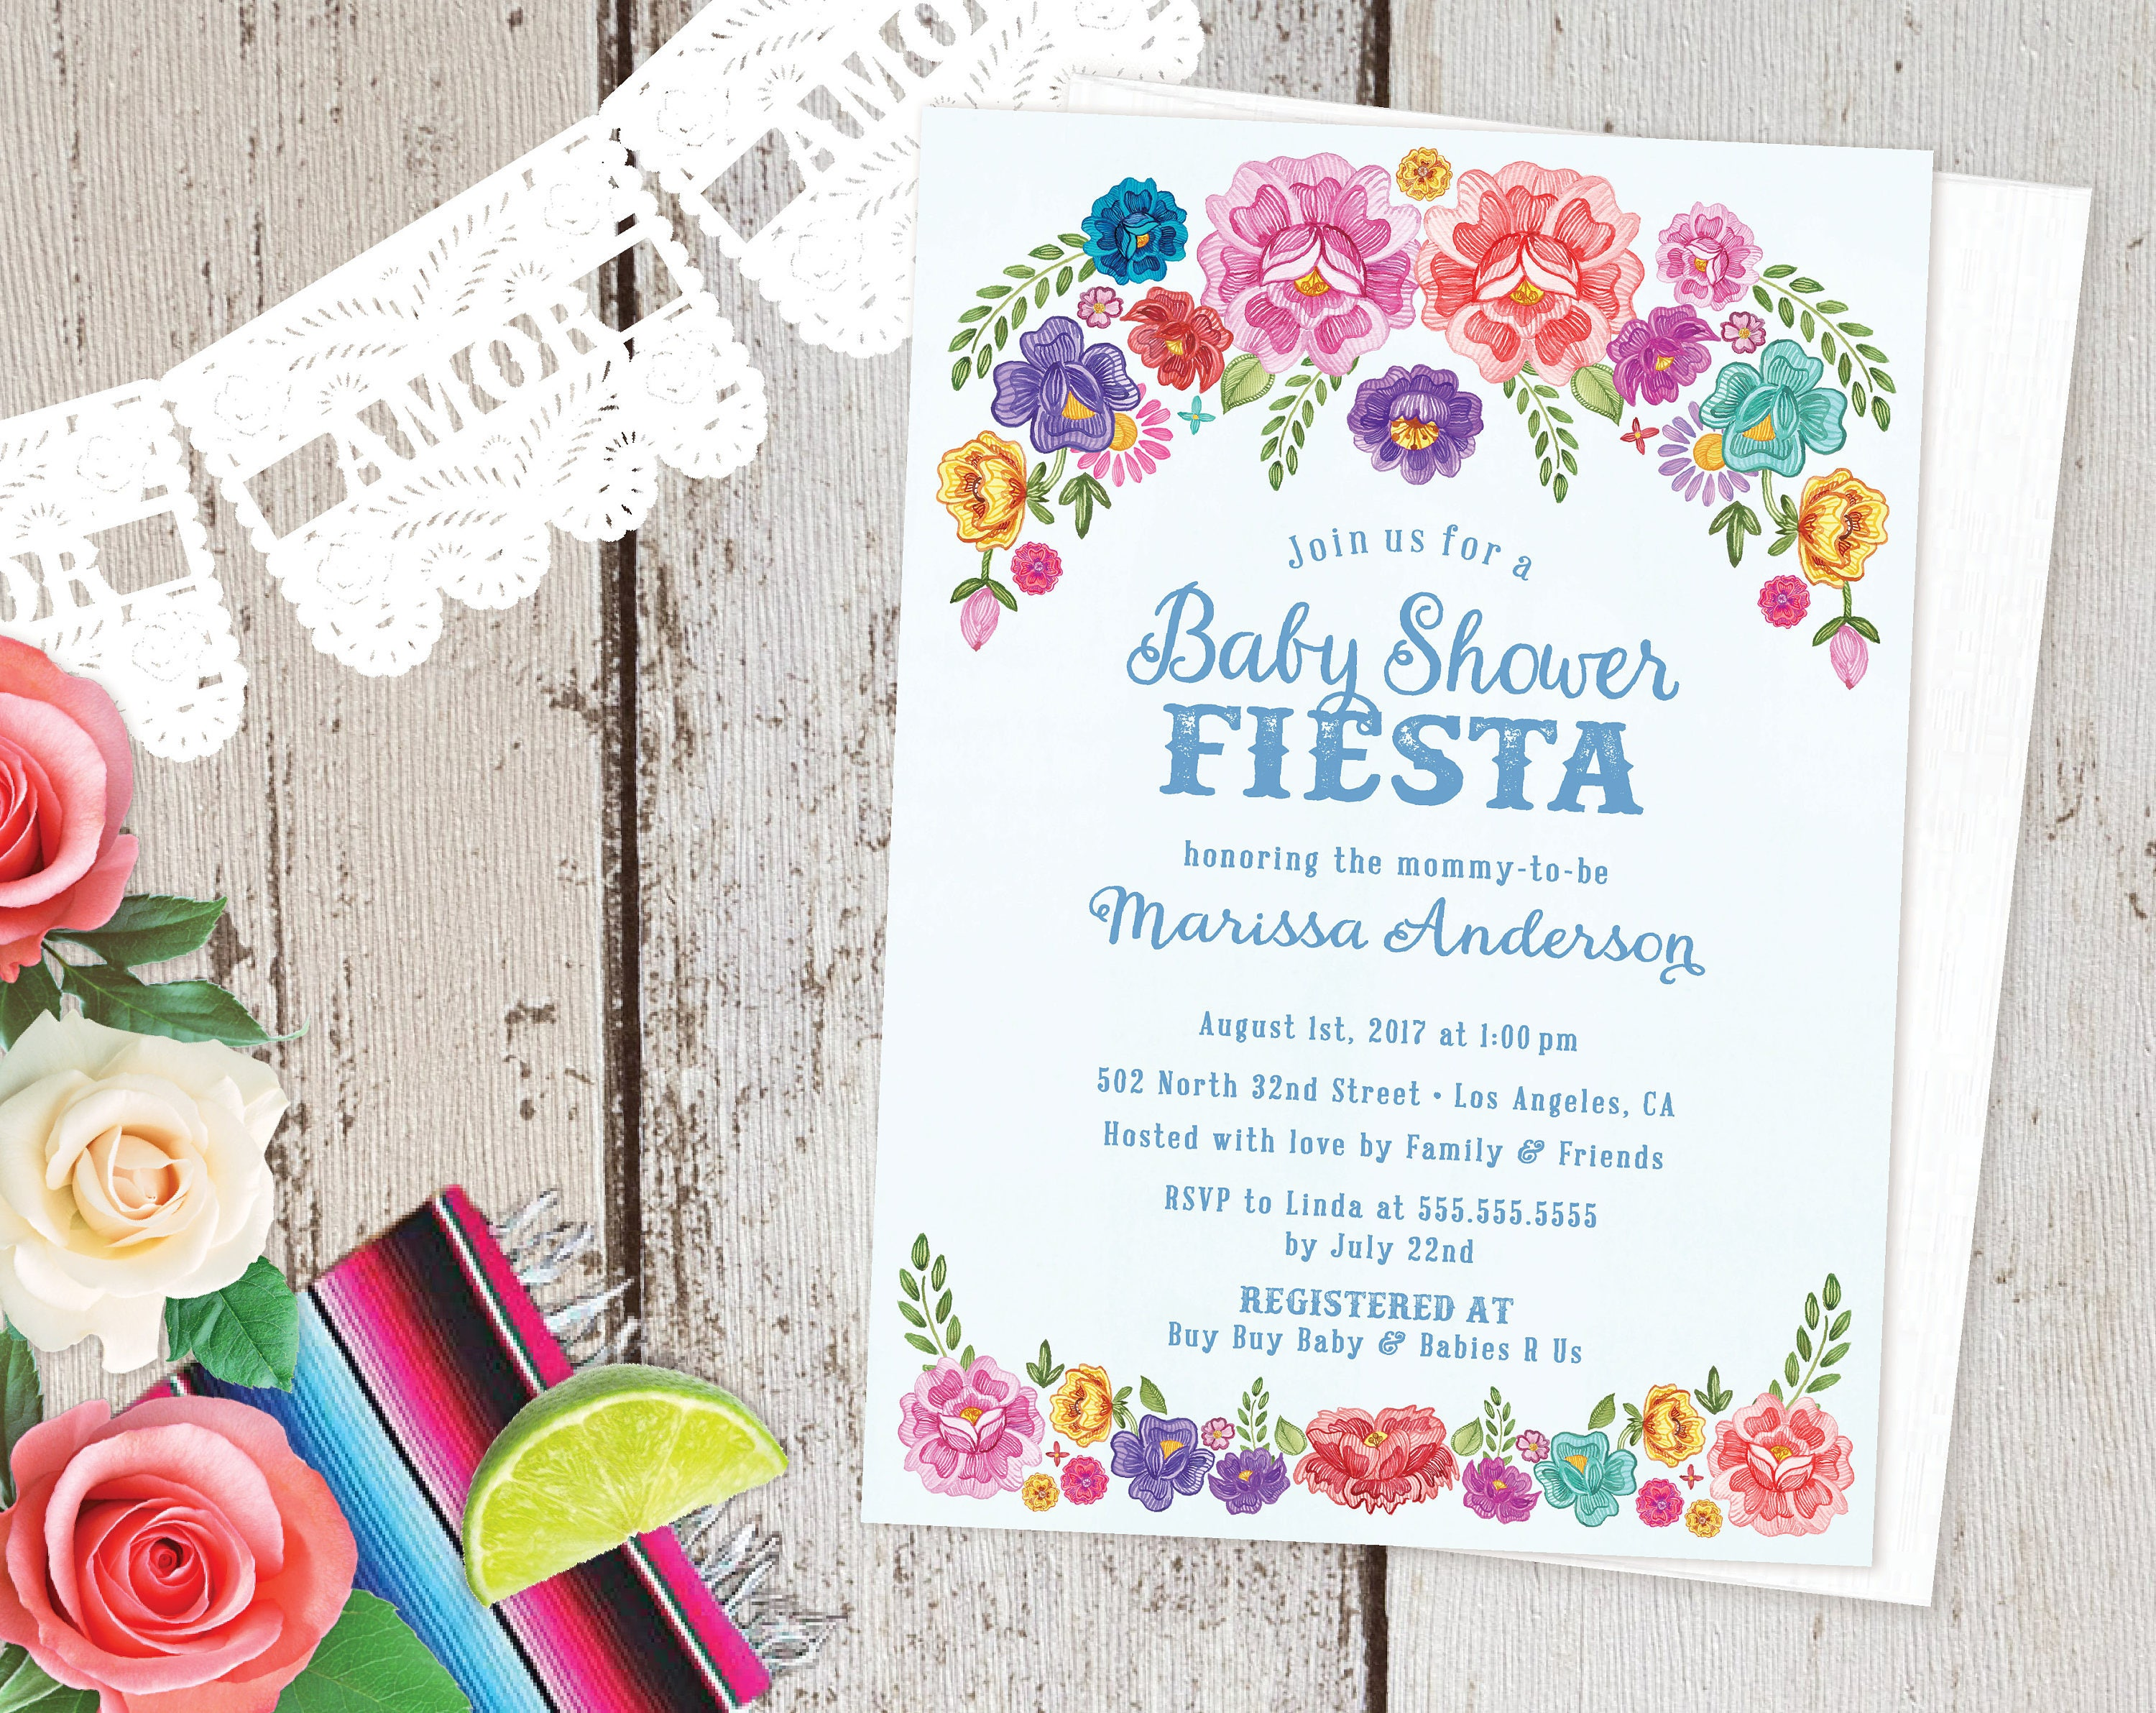 Mexican Fiesta Theme Floral Baby Shower Invitations Spanish